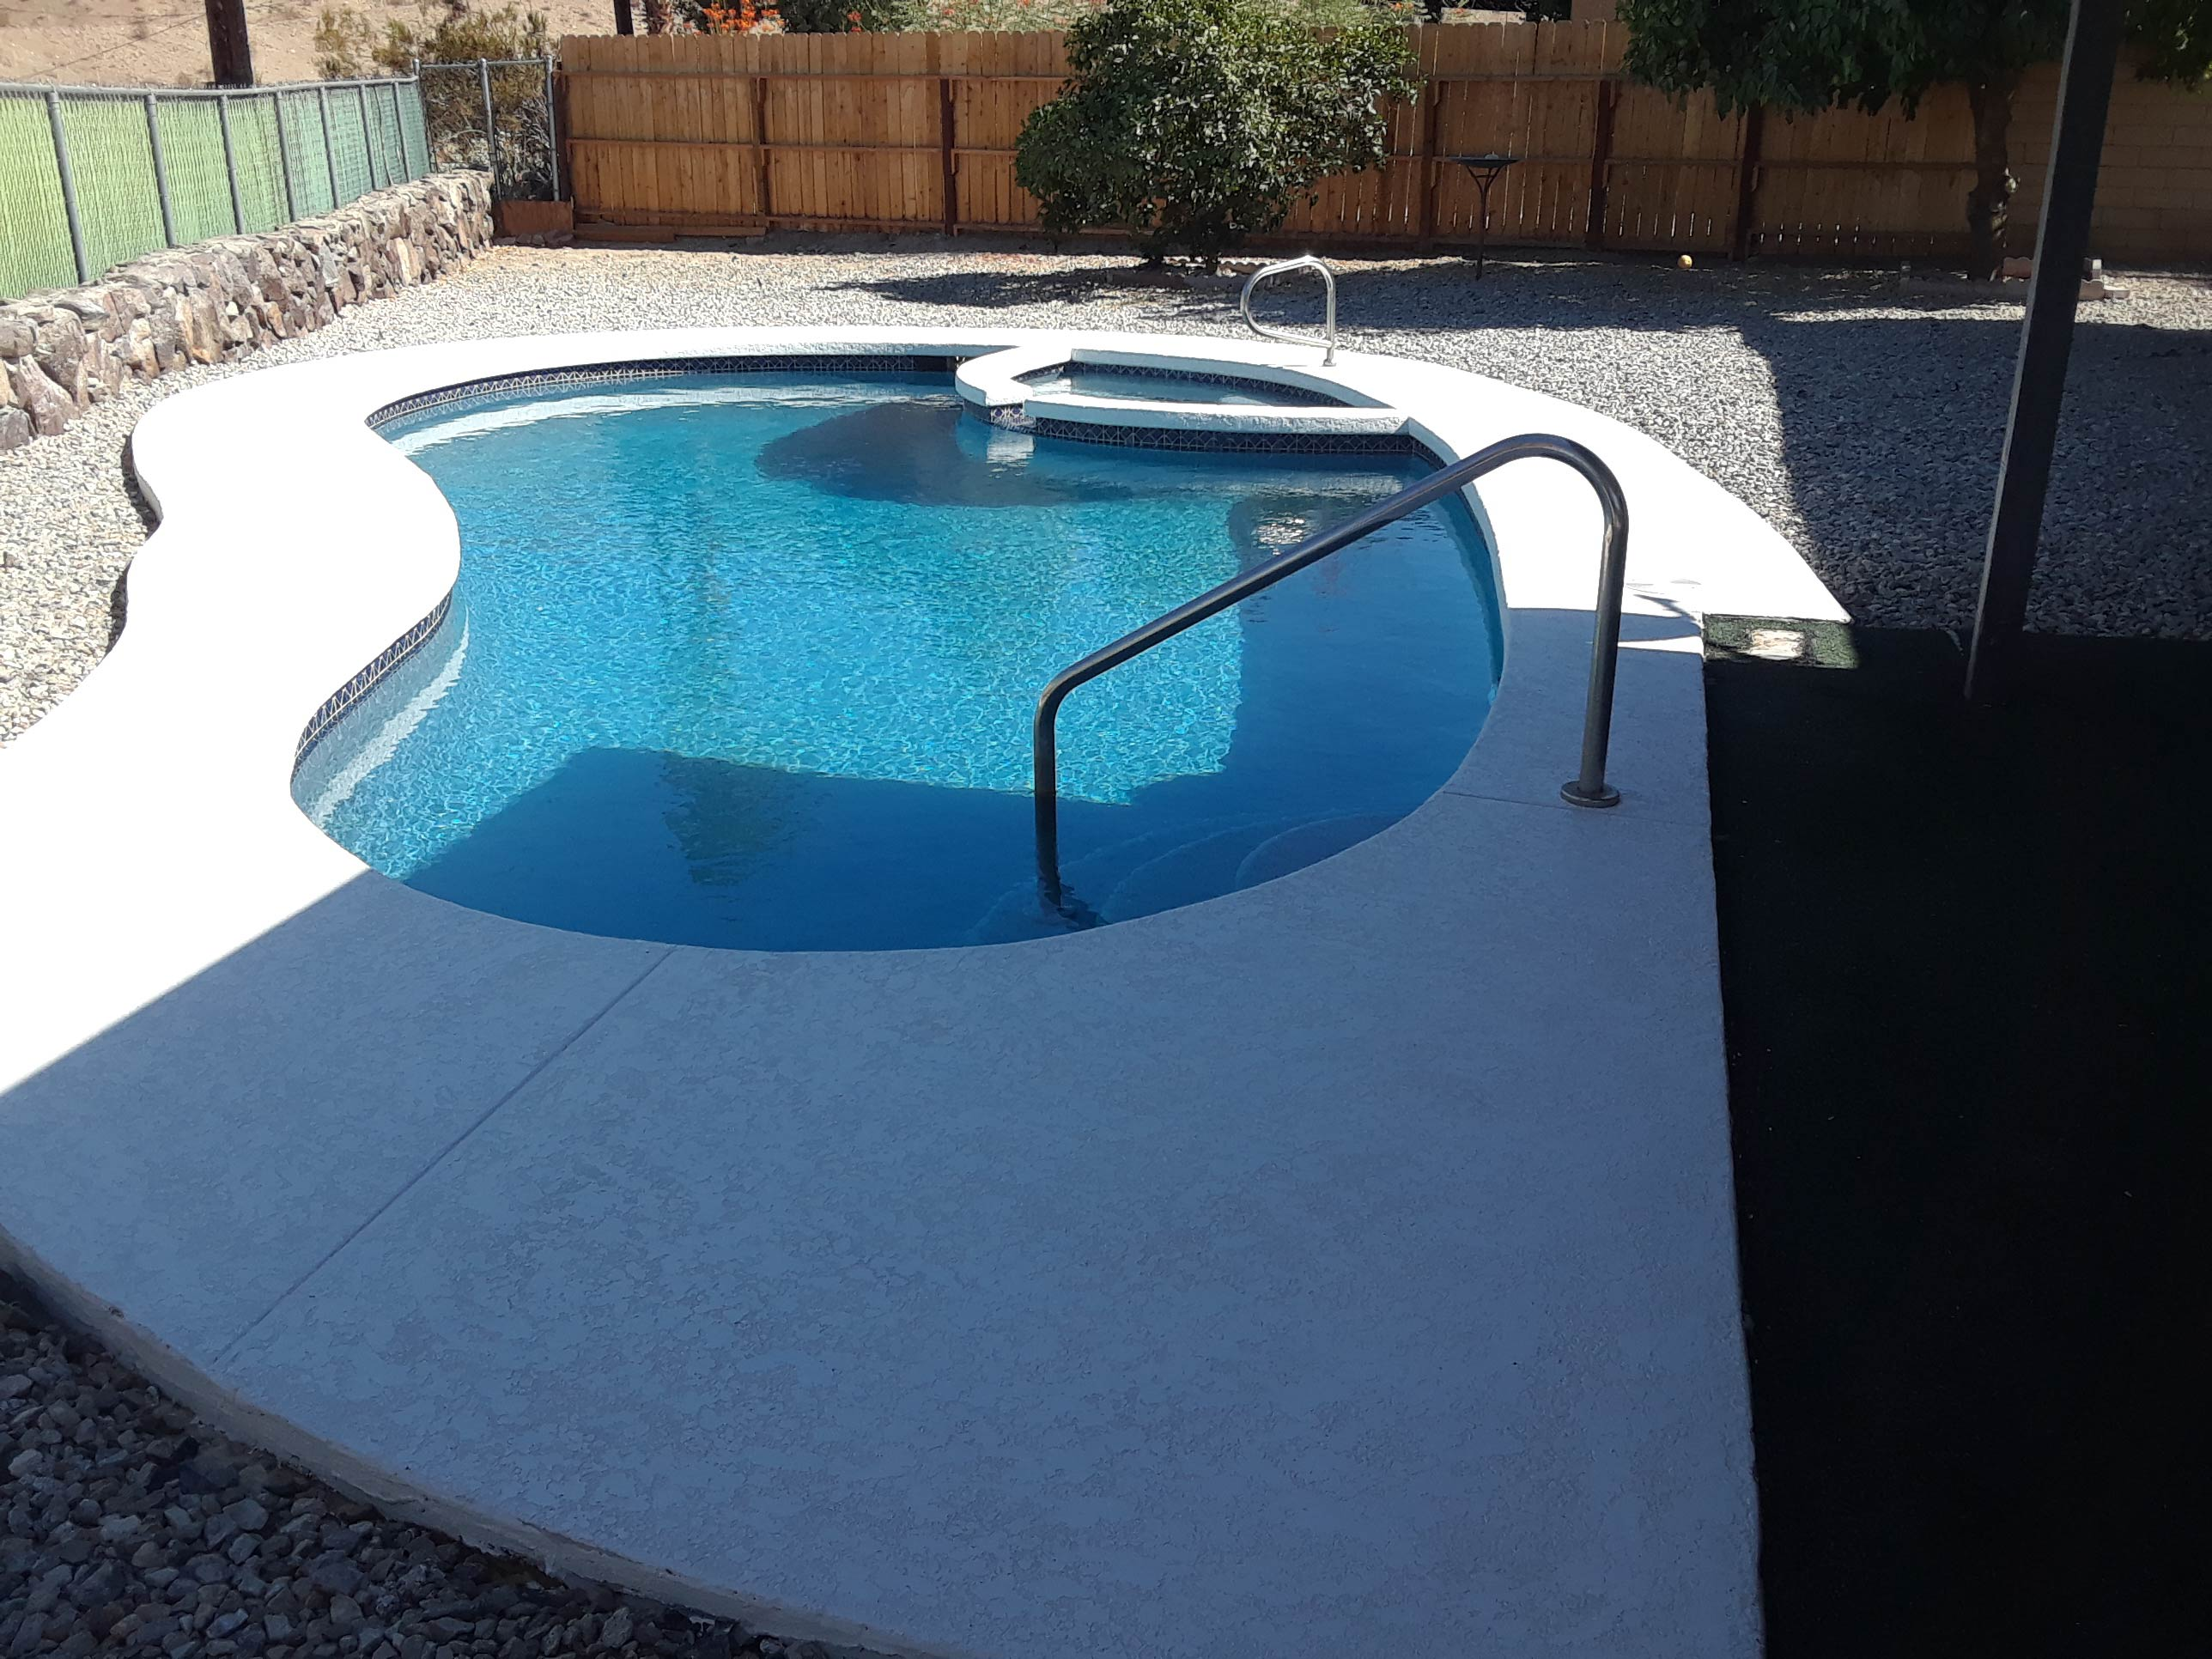 Pool Deck After